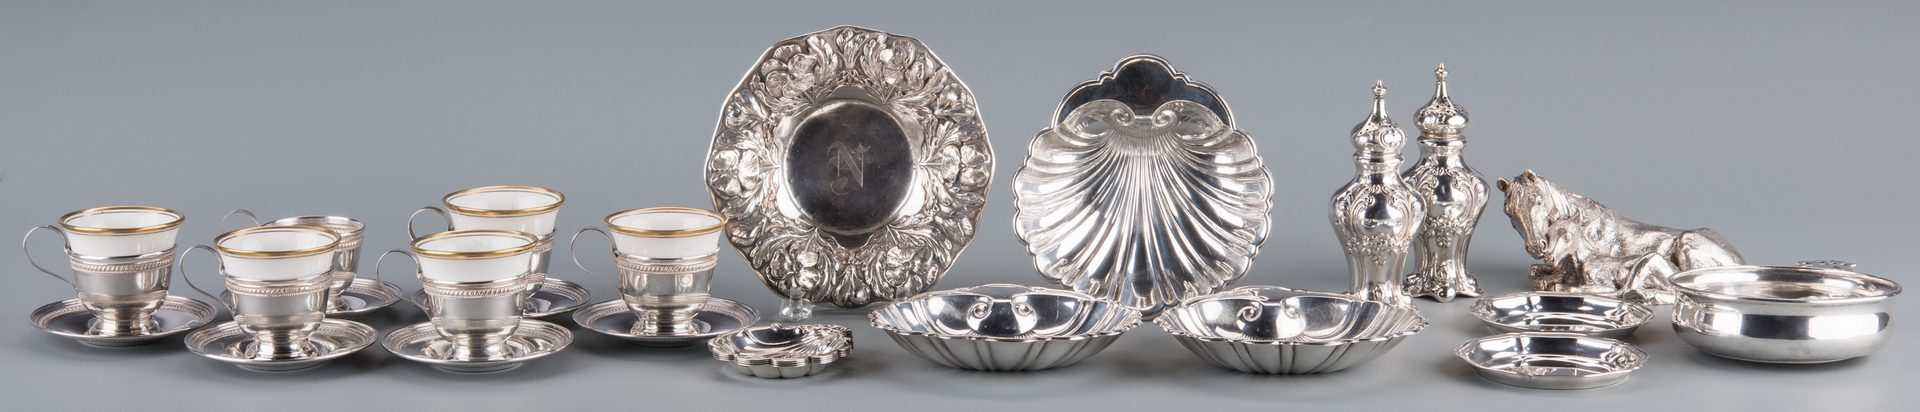 Lot 935: 20 Sterling items inc. Demitasse